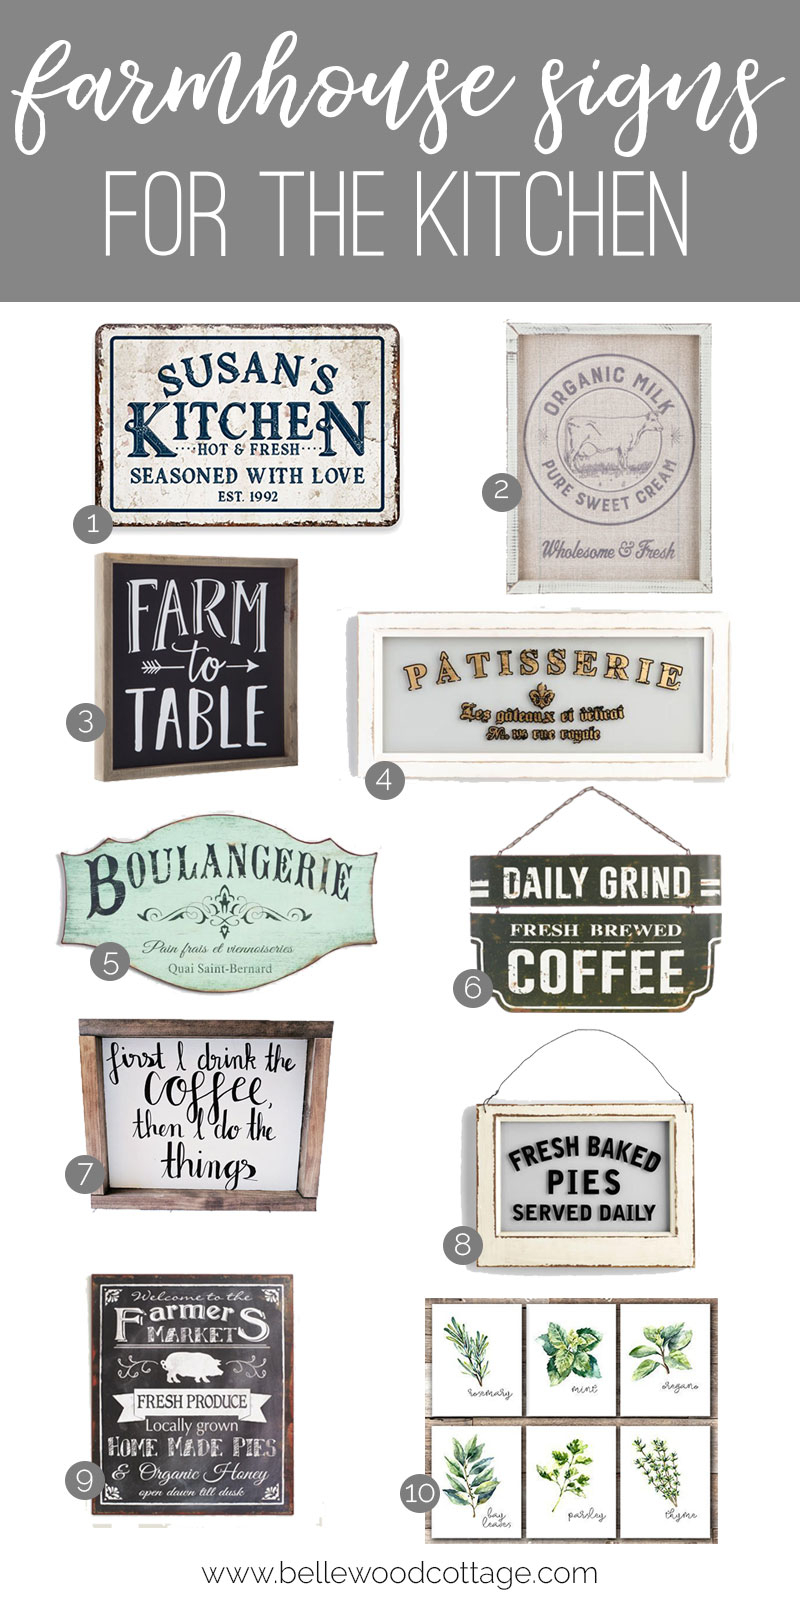 Bathroom Personalised Personalized Wall Door Wreath Home Intended For Personalized Distressed Vintage Look Kitchen Metal Sign Wall Decor (View 13 of 30)